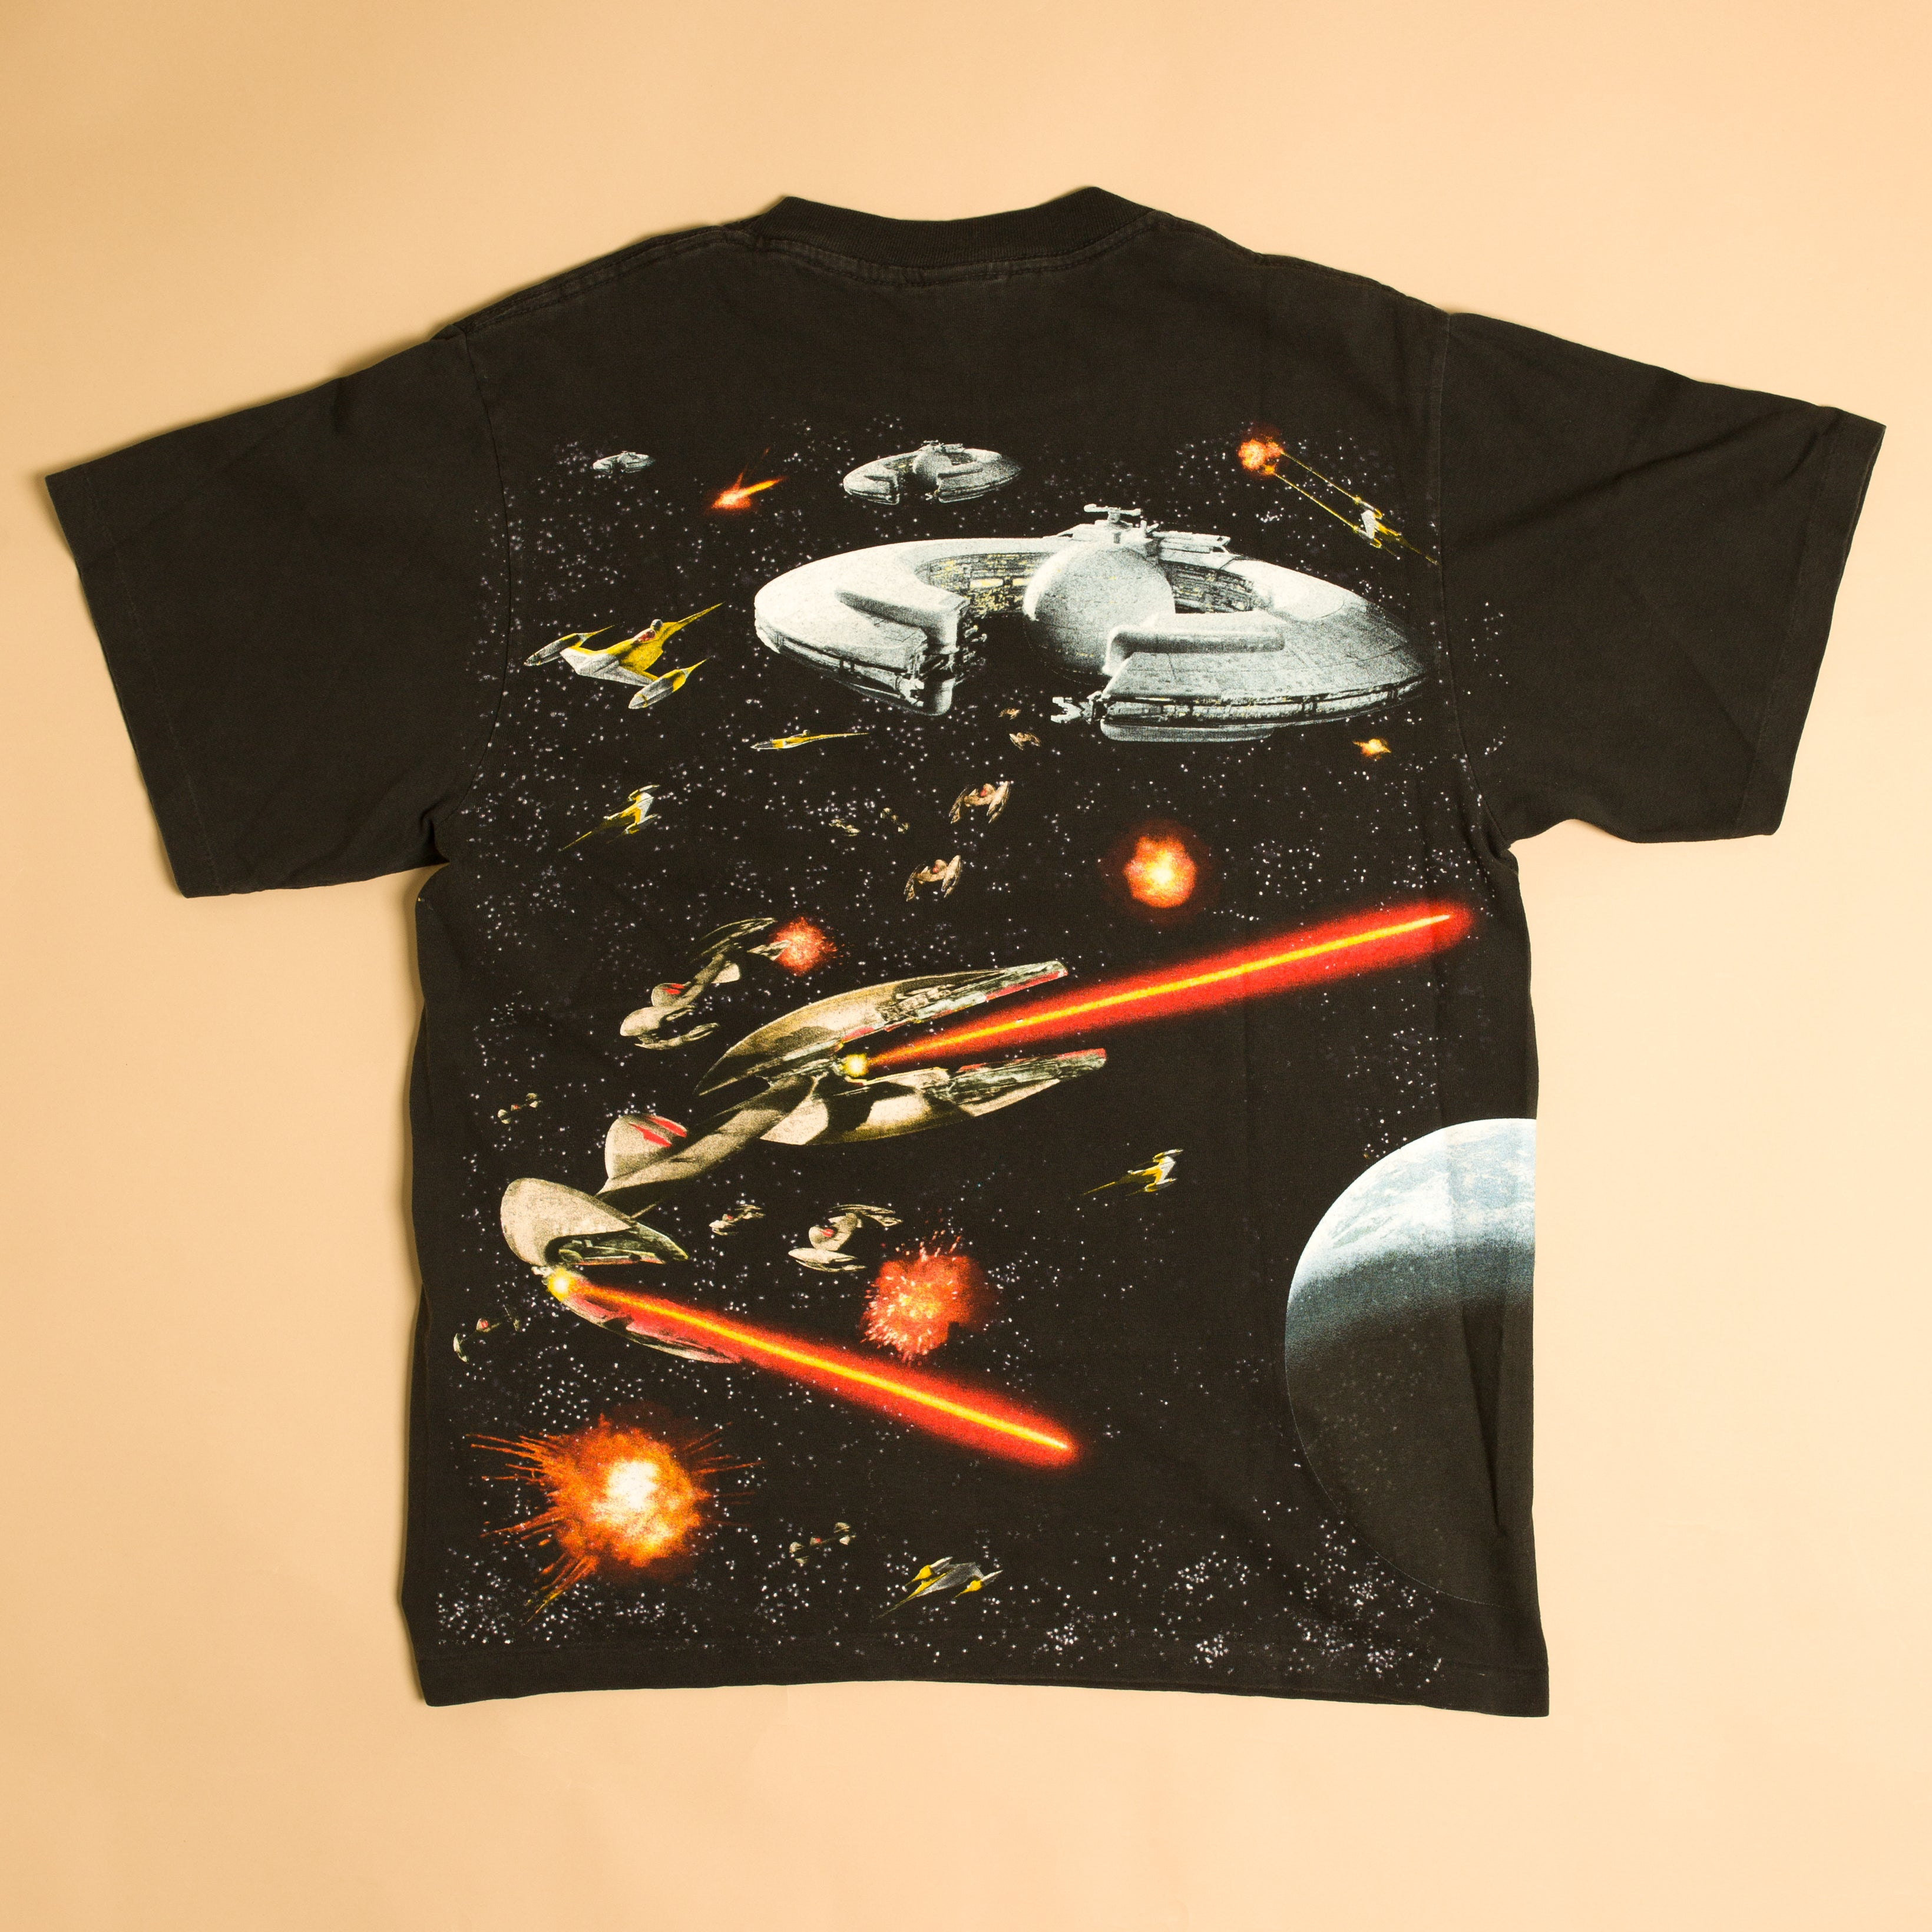 1999 Star Wars Episode 1 All Over Print T-Shirt